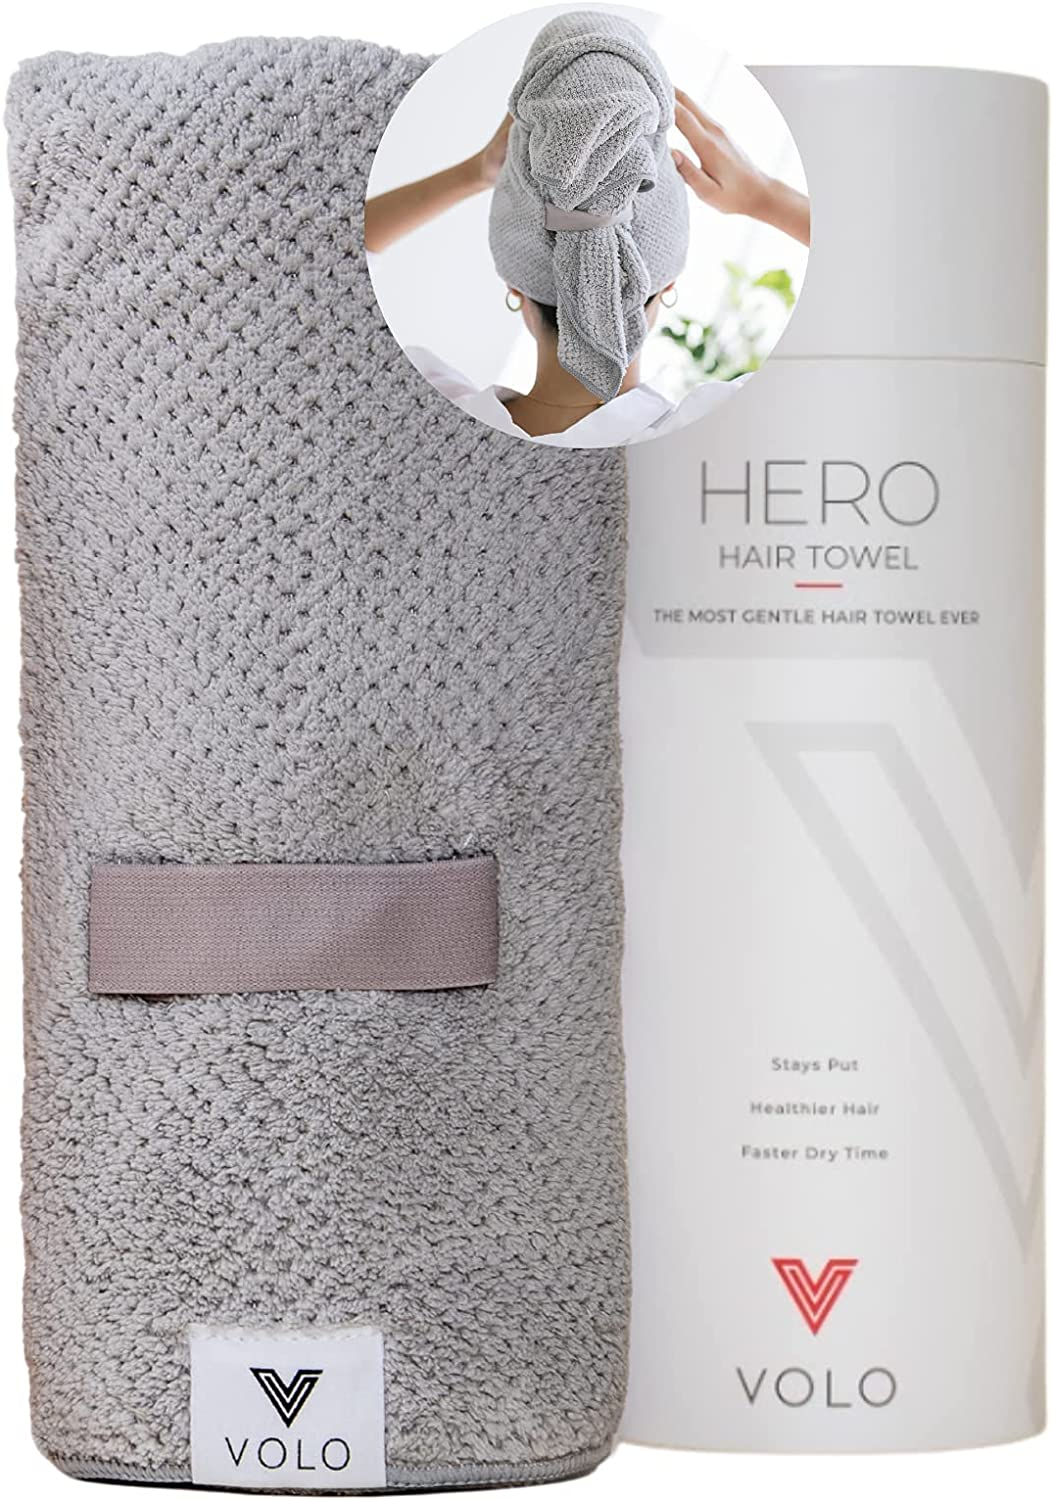 VOLO Hero Microfiber Hair Towel   Super Absorbent, Ultra-Soft, Fast Drying   Reduce Dry Time by 50%   Large, Premium Wrap Towel for All Hair Types   Anti-Frizz, Anti-Breakage, Hands-Free   Luna Gray: Kitchen & Dining